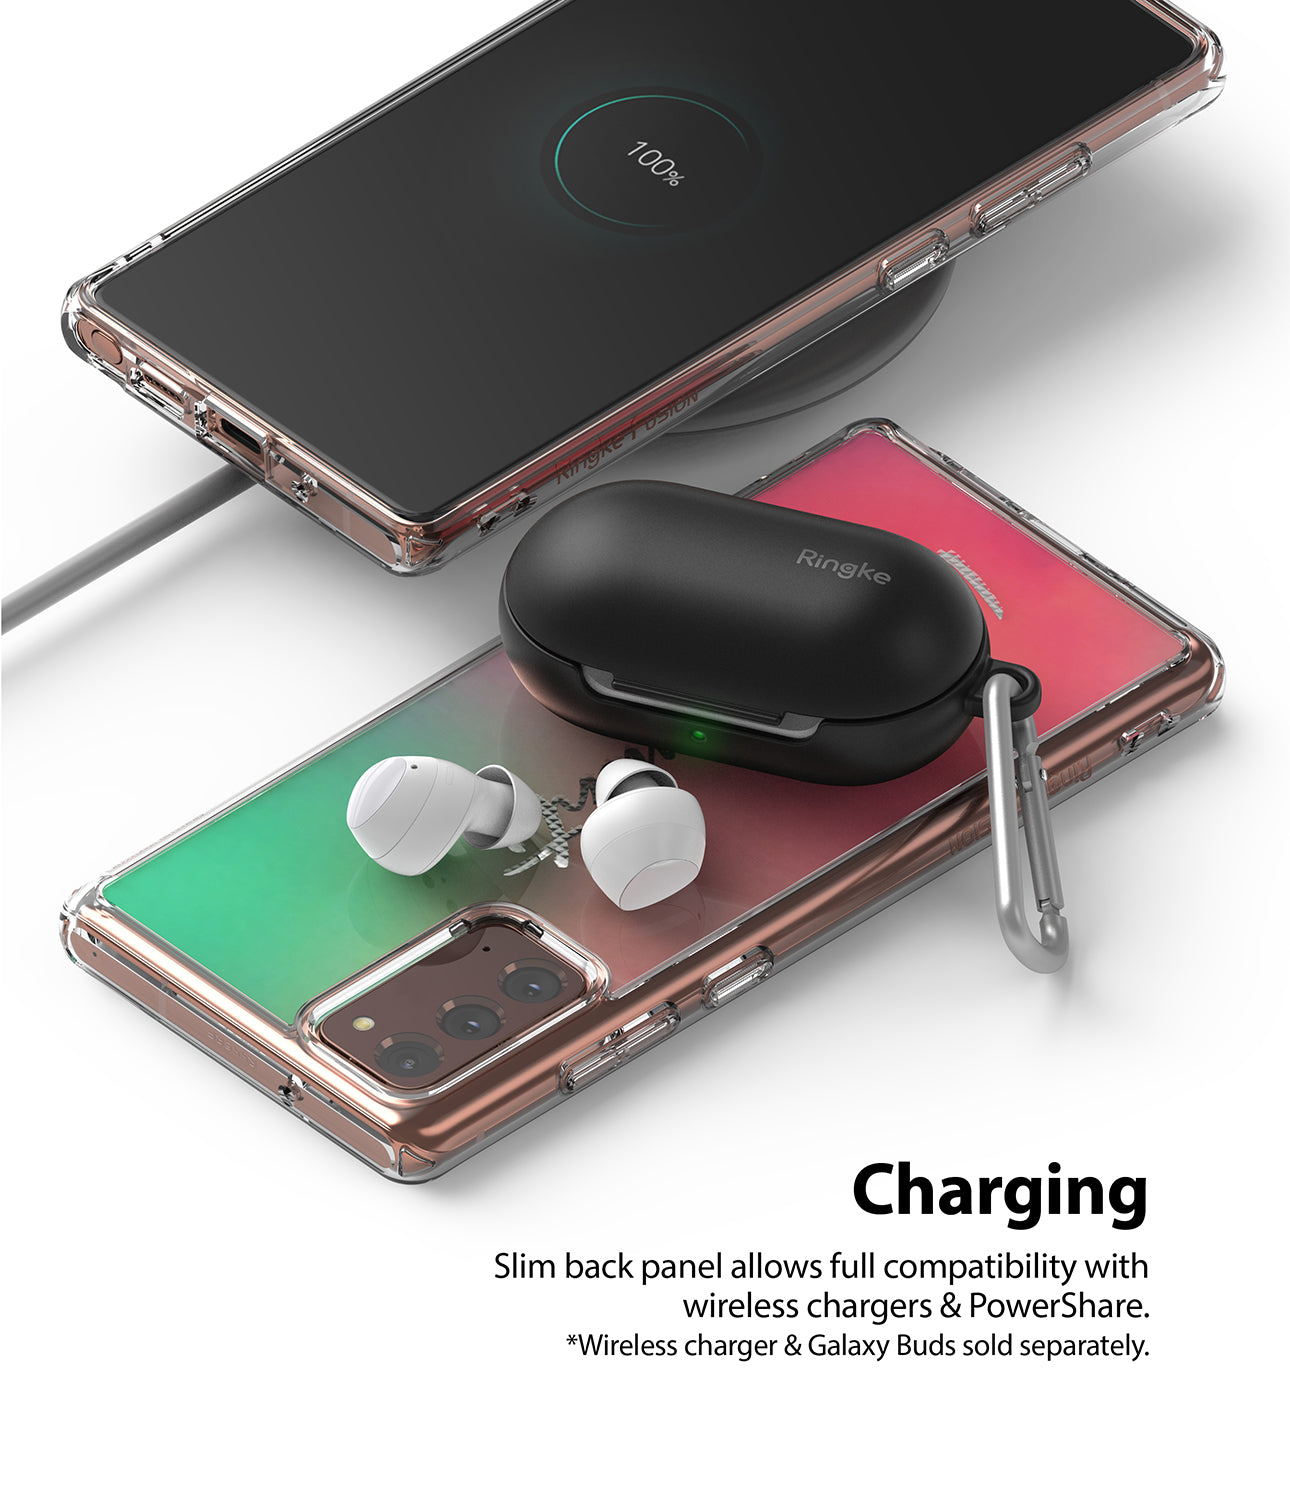 slim back panel allows full compatibility with wireless chargers & powershare